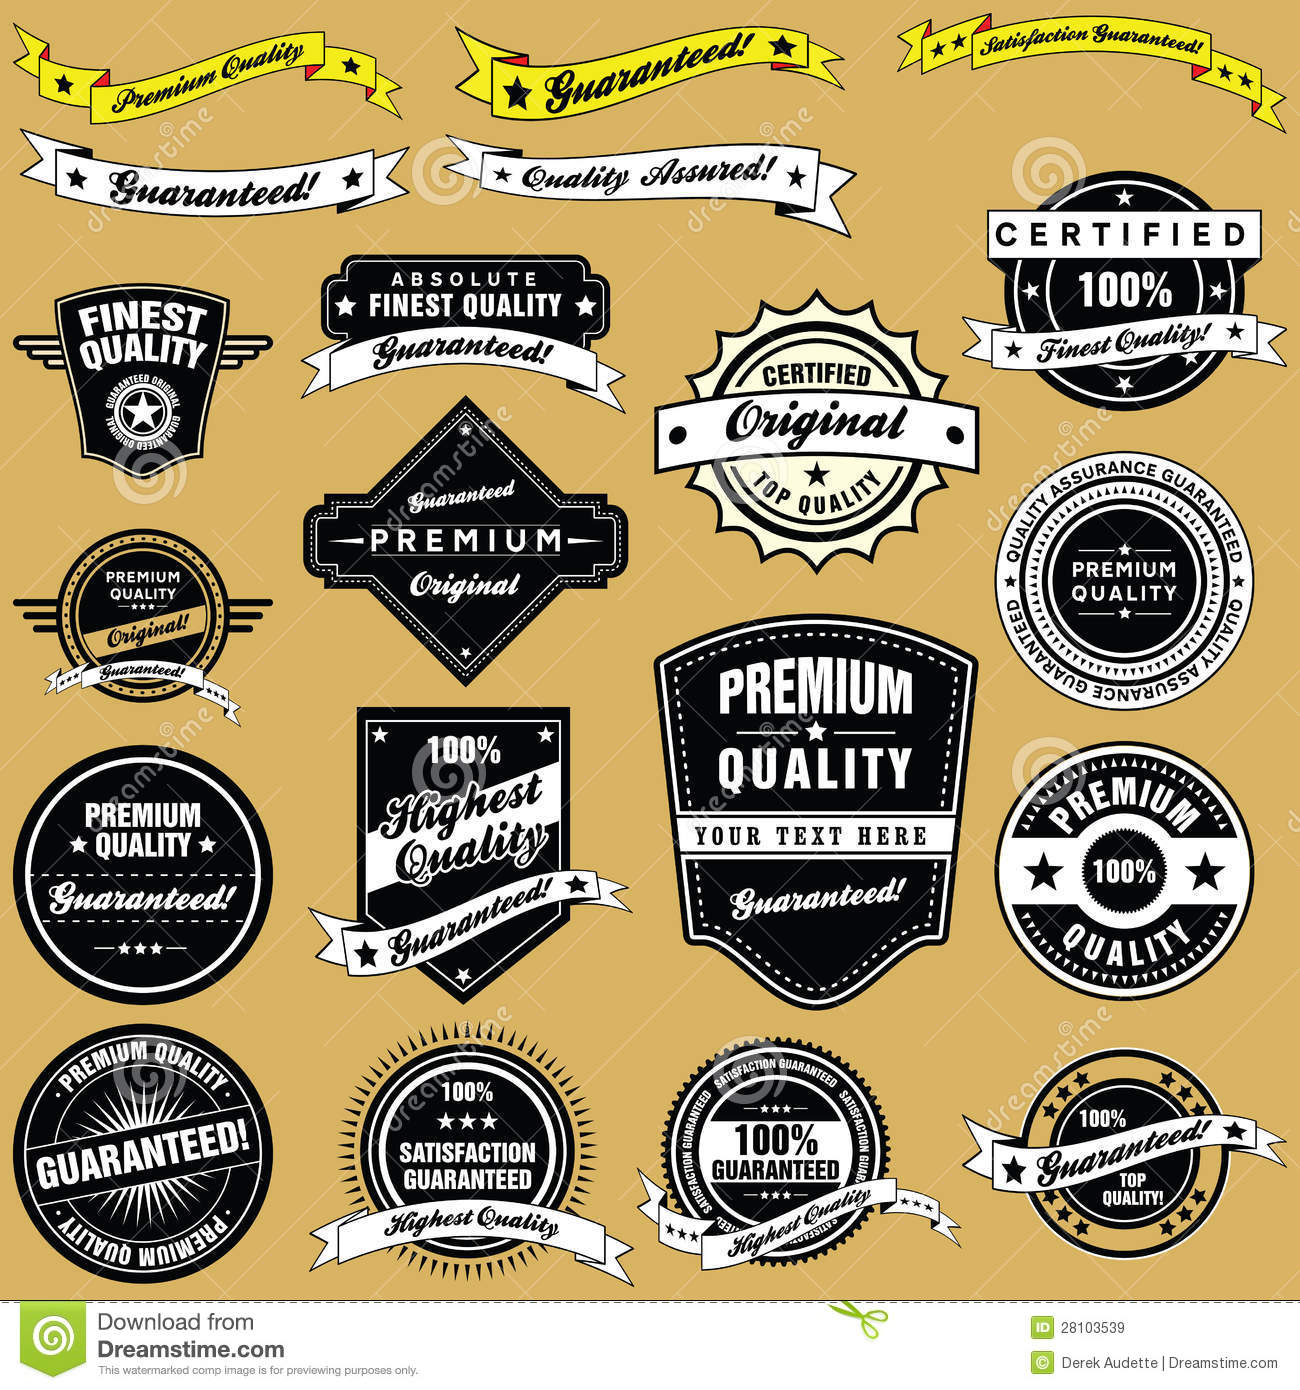 retro style vintage labels and emblems collection royalty free stock images image 28103539. Black Bedroom Furniture Sets. Home Design Ideas